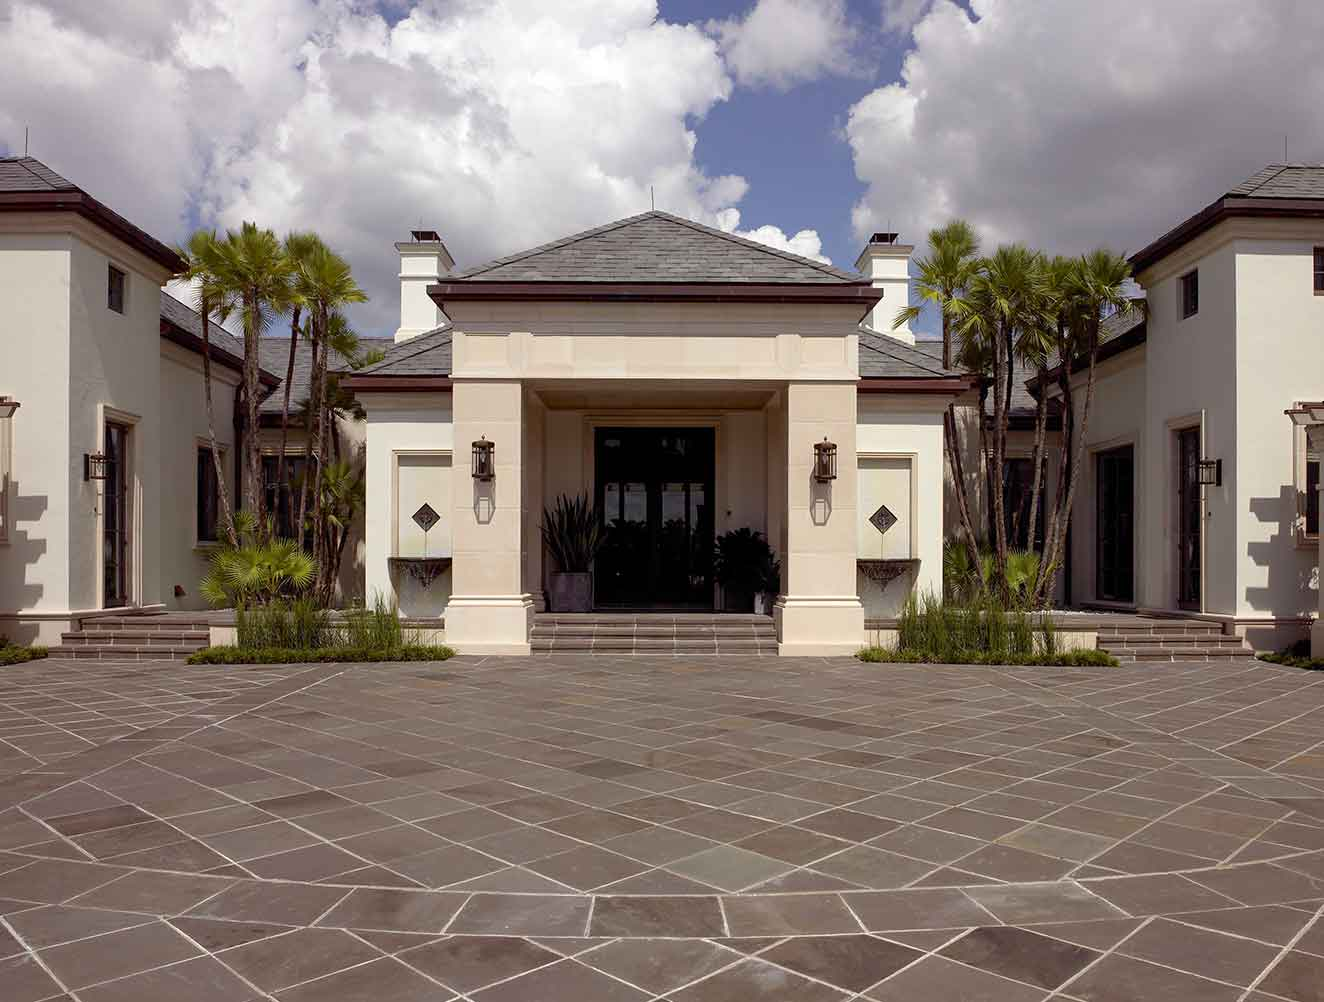 Exterior Entryway of Kings Town Estate in Naples Florida, single family home designed by Kukk Architecture & Design Naples Architecture Firm